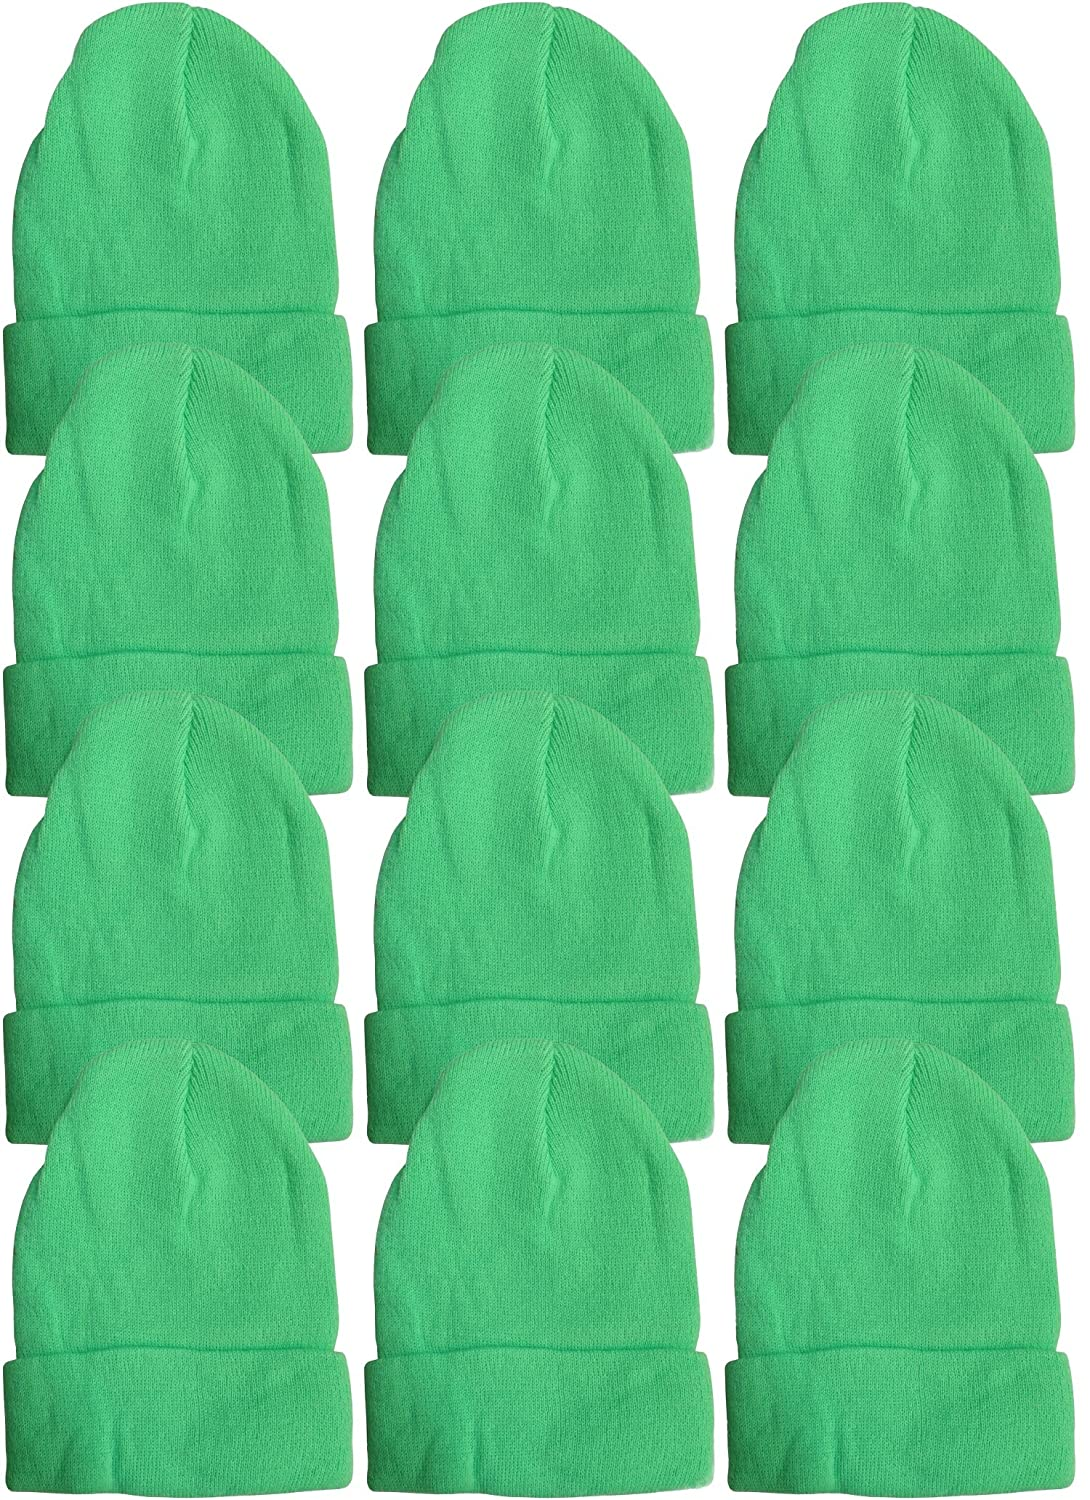 df7c2b5daf8 12 Units excell Mens Womens Warm Winter Hats in Assorted Colors